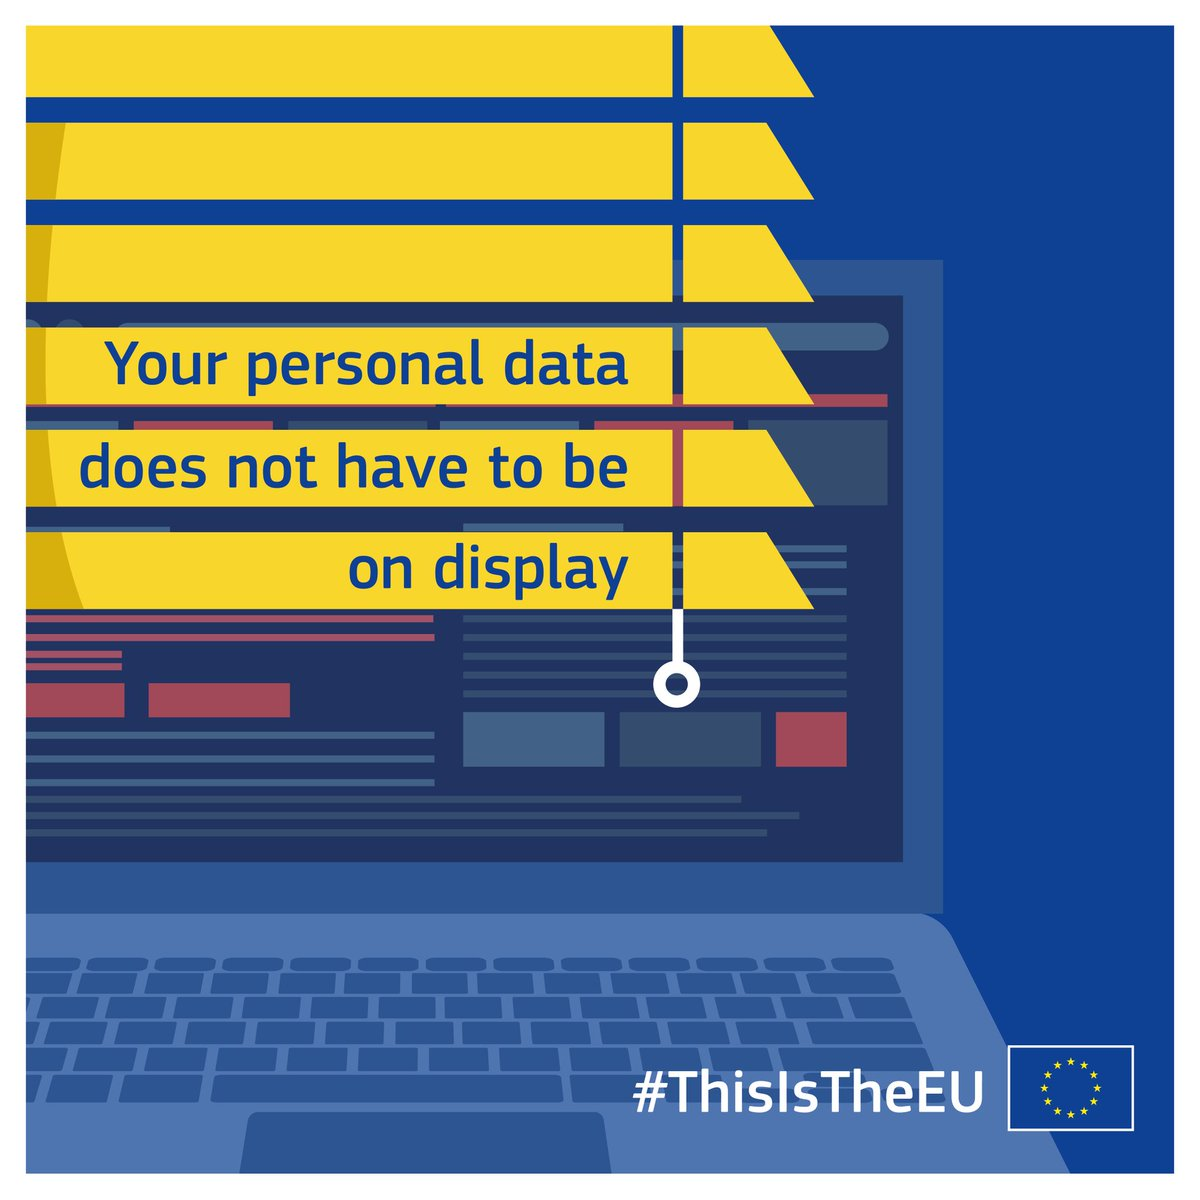 #GDRP is coming. As of 25 May the new rules will ensure stronger #dataprotection. People will have more control over their #personaldata. Businesses will benefit from a level playing field.  Check out all the practicalities on our dedicated page  https:// bit.ly/2LhEhAt  &nbsp;   #EUdataP<br>http://pic.twitter.com/4PiajTinf3